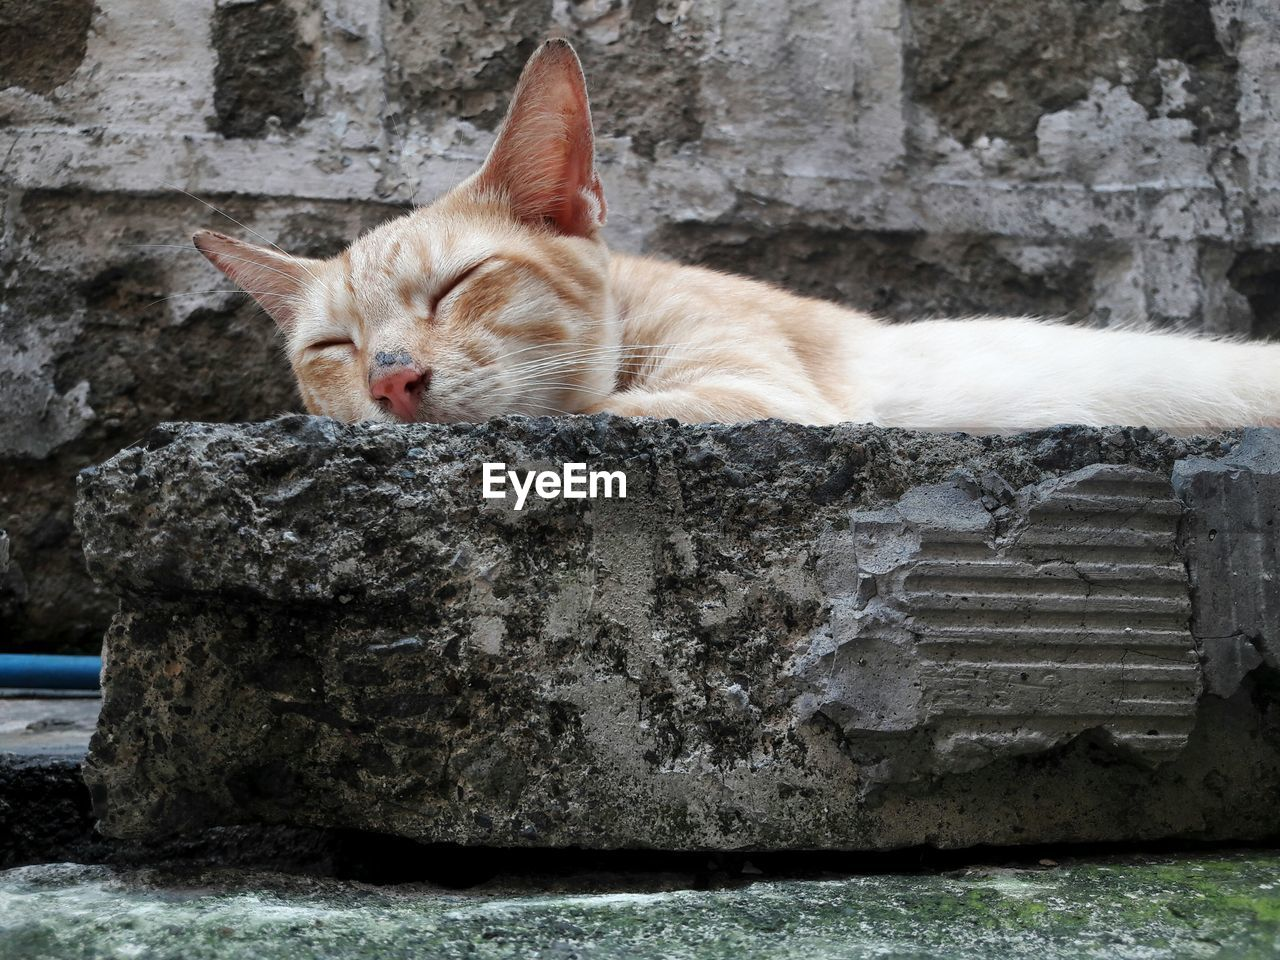 cat, domestic cat, feline, domestic, animal themes, domestic animals, mammal, animal, pets, one animal, vertebrate, relaxation, no people, portrait, day, wall, whisker, looking at camera, solid, resting, ginger cat